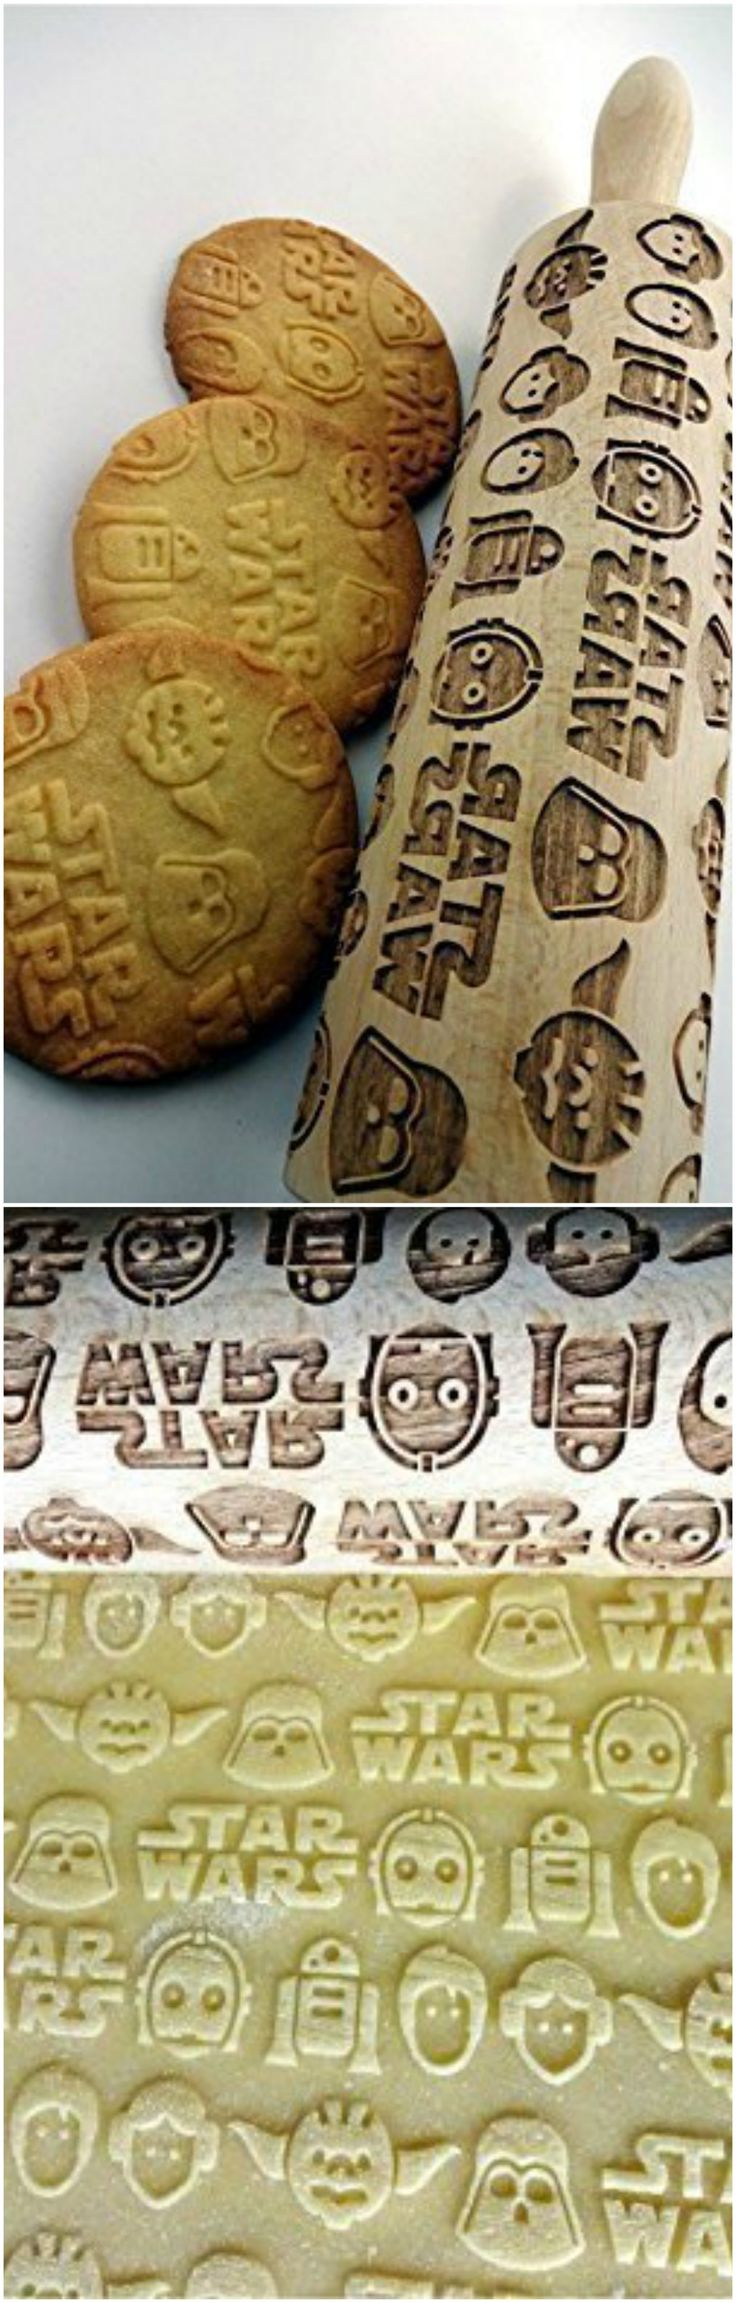 STAR WARS pattern embossing rolling pins can be a part of your kitchen or engraved keepsakes. They make a unique and touching gift for any person, family or occasion. Perfect for birthdays, house-warming, Christmas, Mother's Day or special occasion.